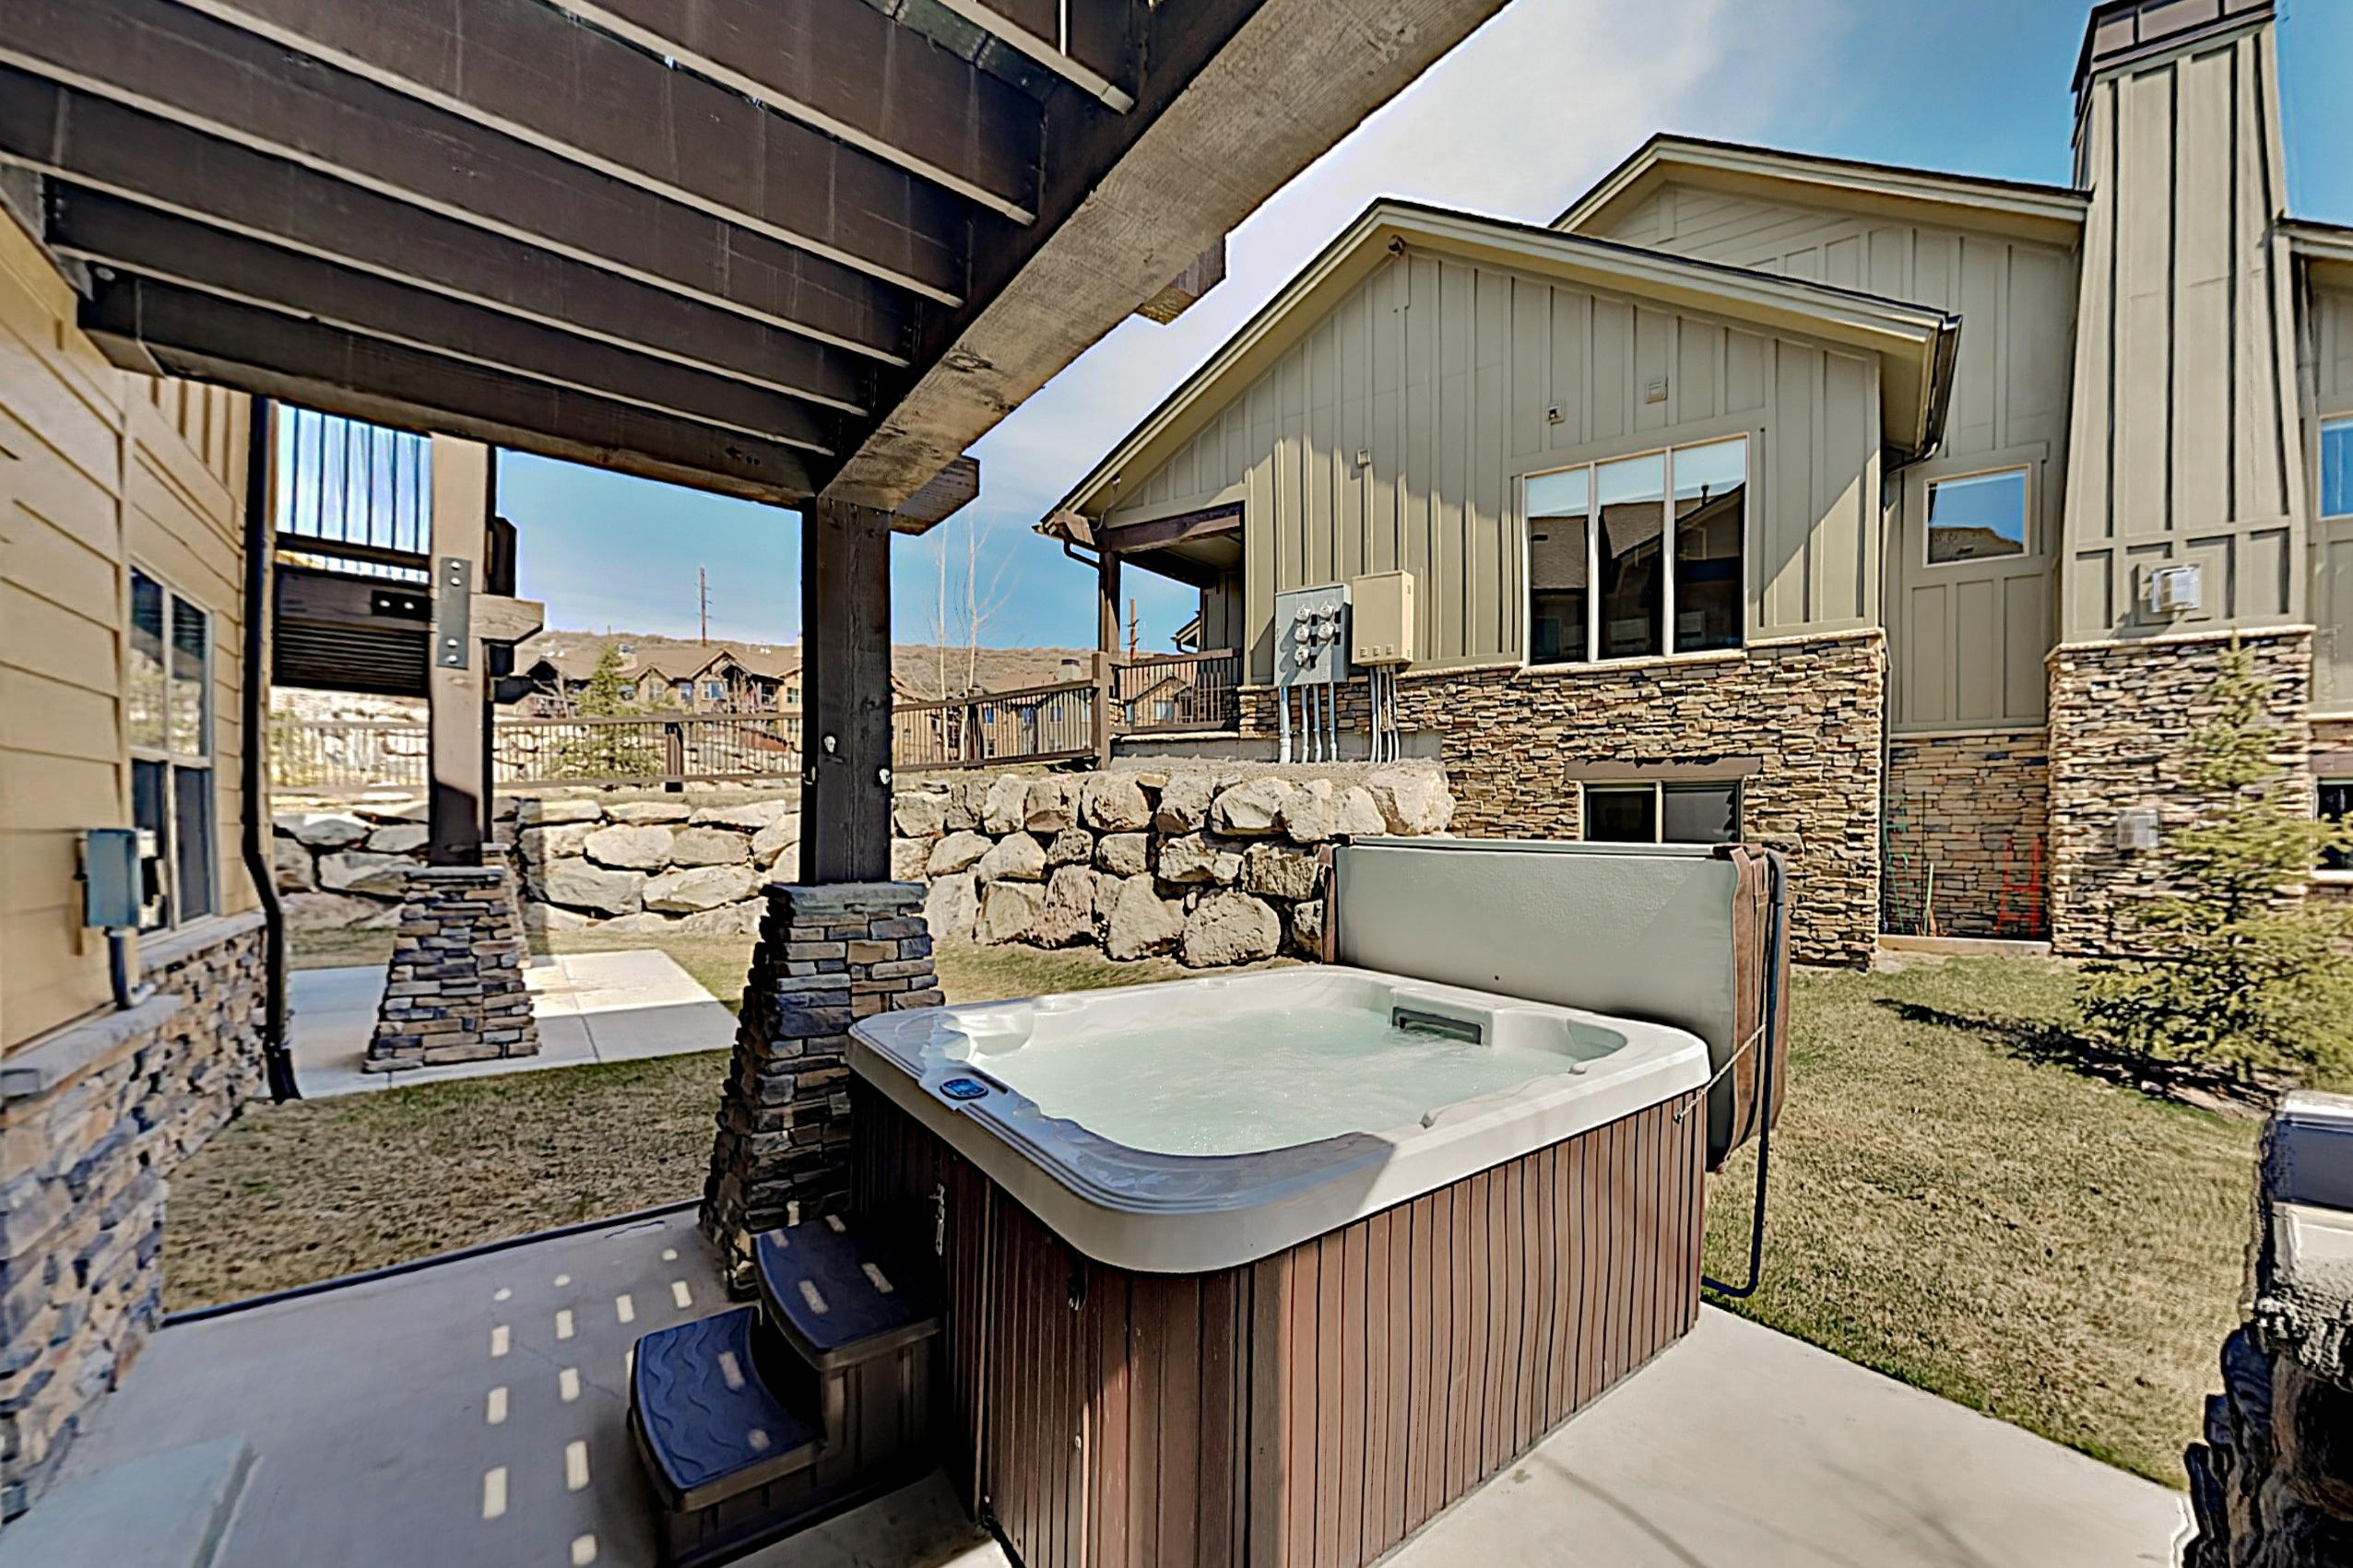 After a day on the mountain, take a dip in the private 6-person hot tub.